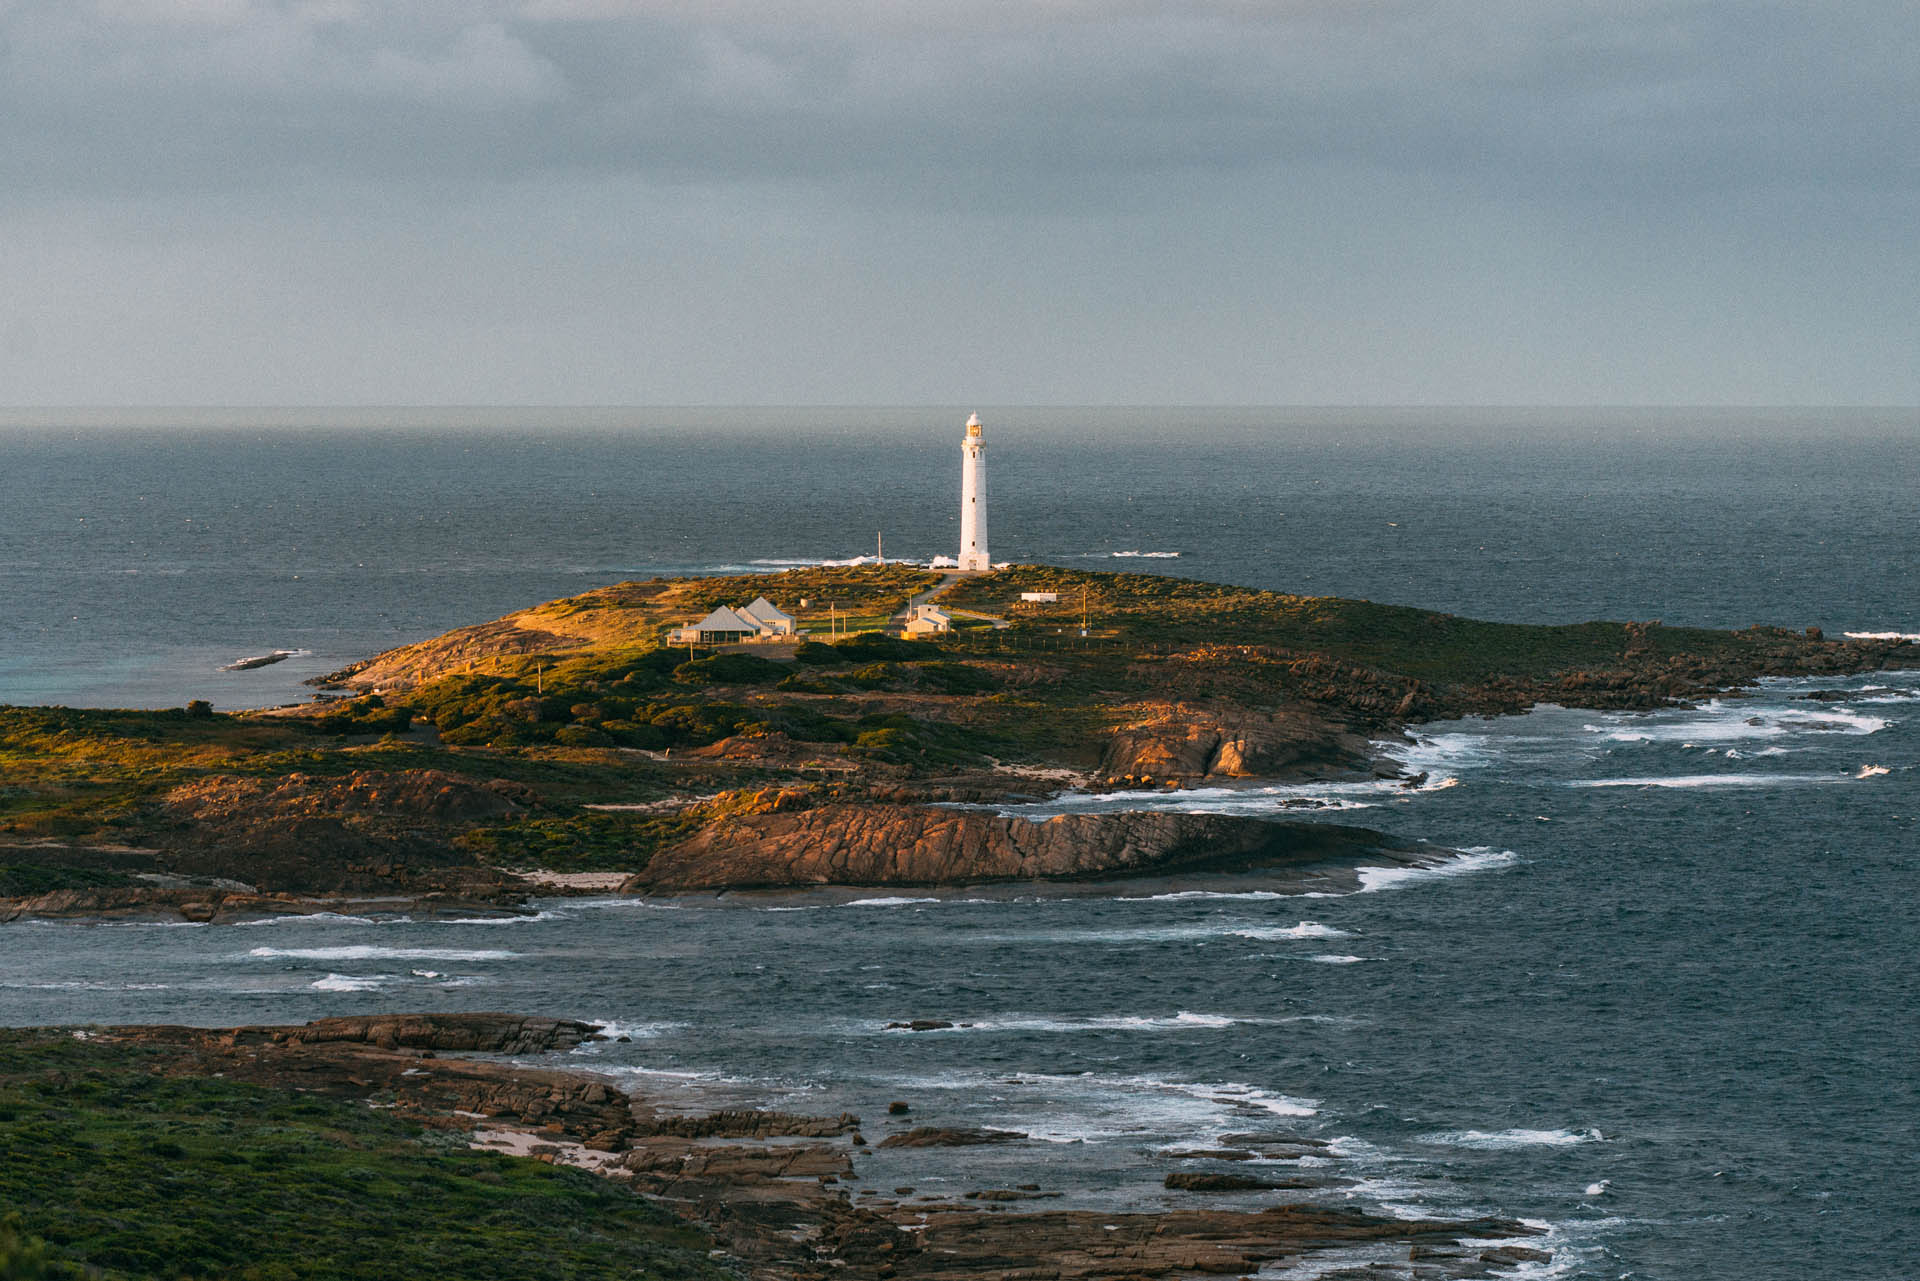 Complimentary Season Passes to Cape Leeuwin Lighthouse Precinct for Augusta Residents